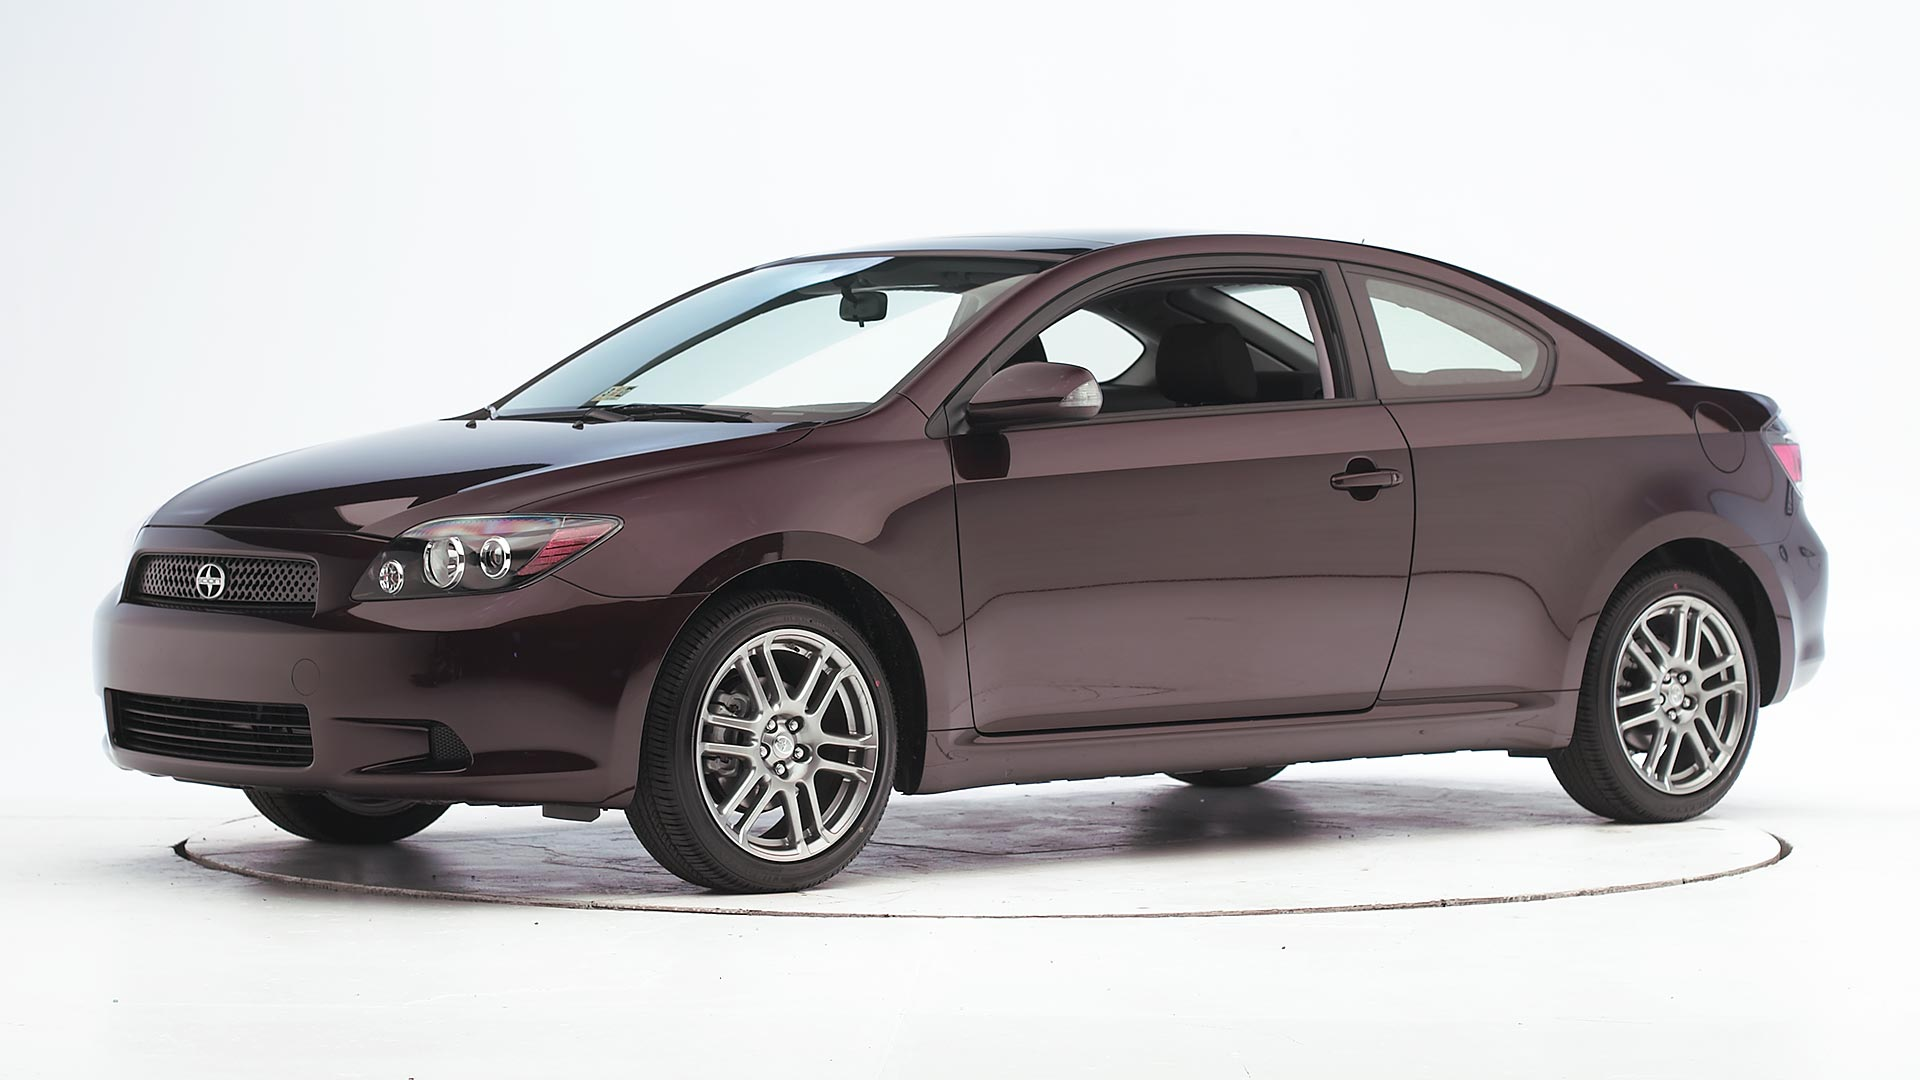 2009 Scion tC 2-door hatchback